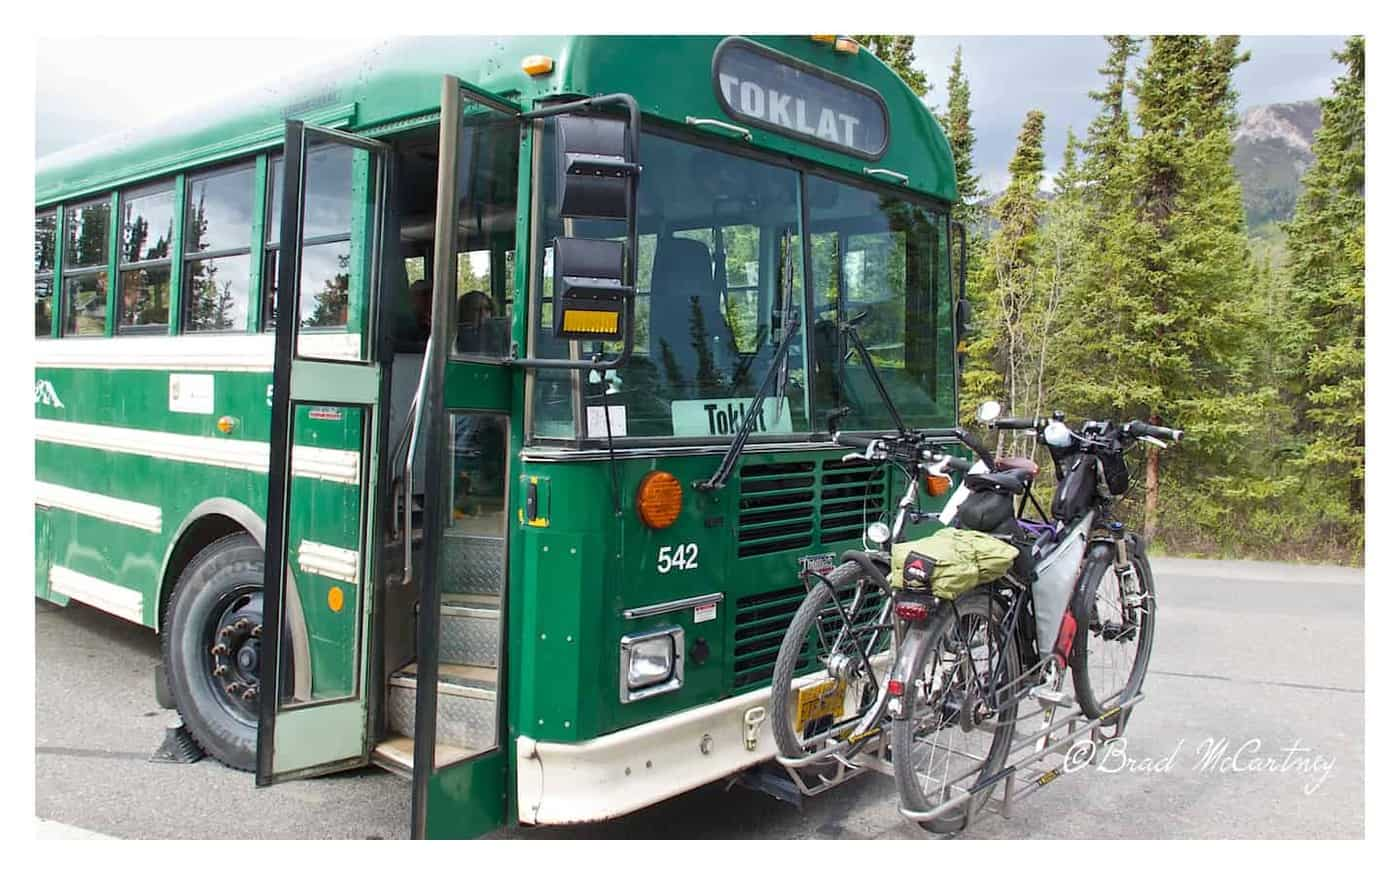 Bus transporting bicycles in Denali National Park